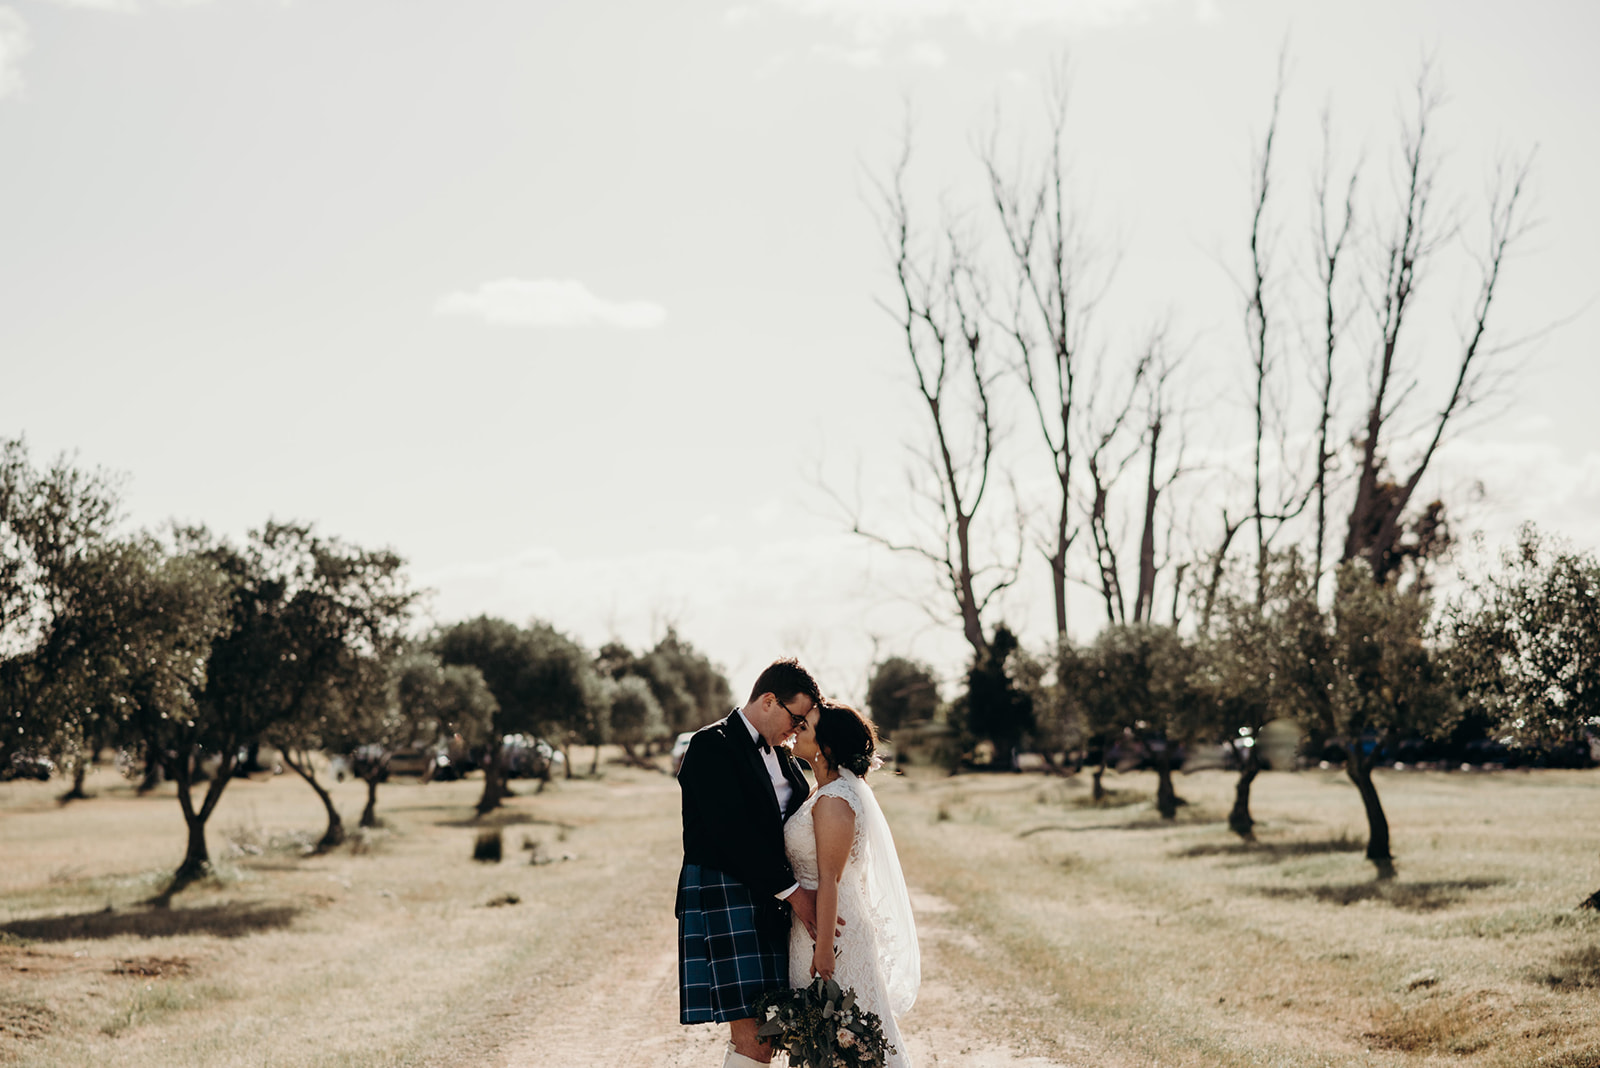 Categories: Weddings-Real Wedding: Genevieve and Stuart - Photography by Tahnee Jade Photography